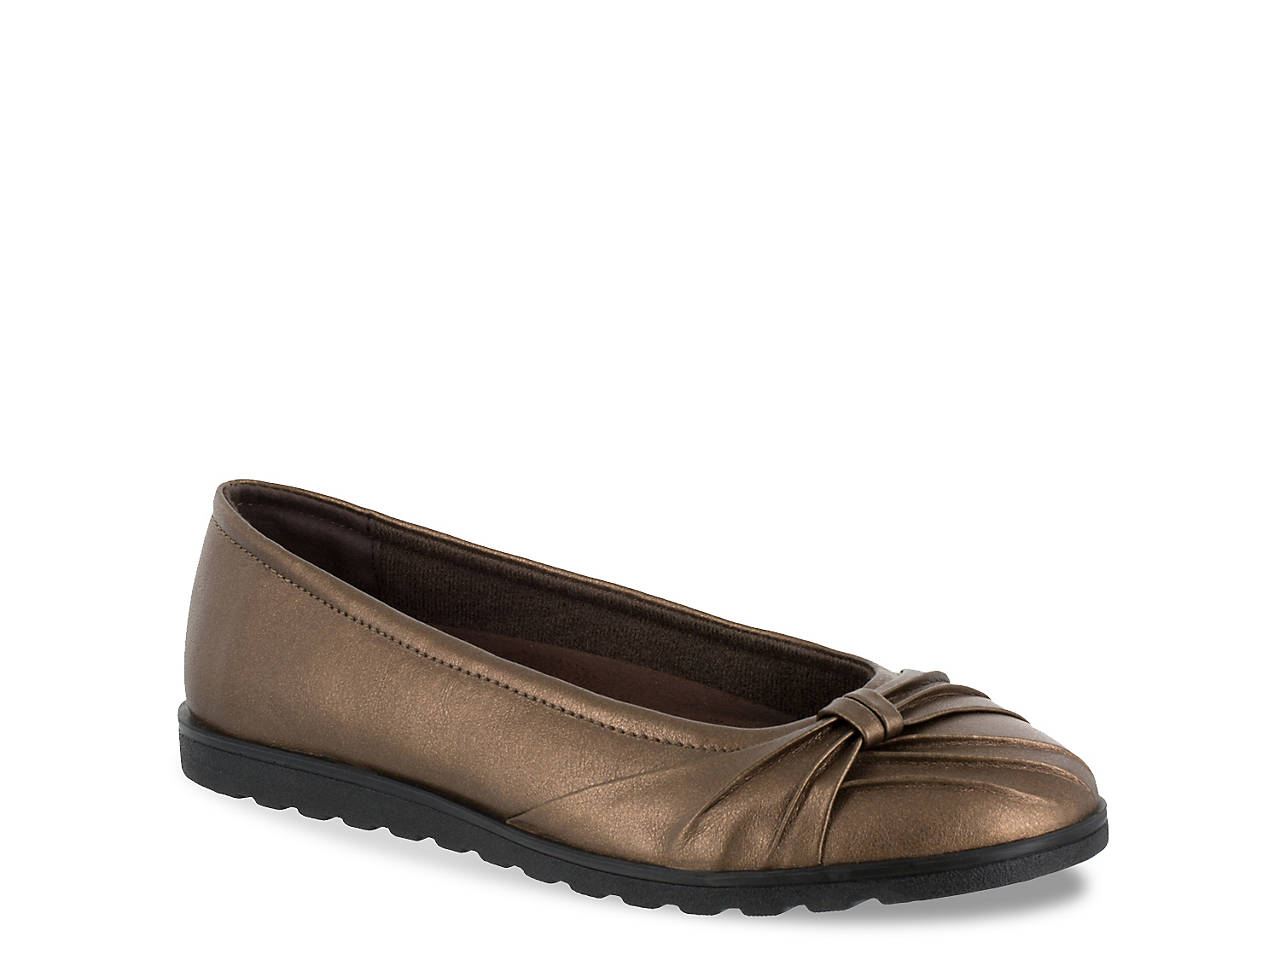 Easy Street Giddy II Flat (Women's)